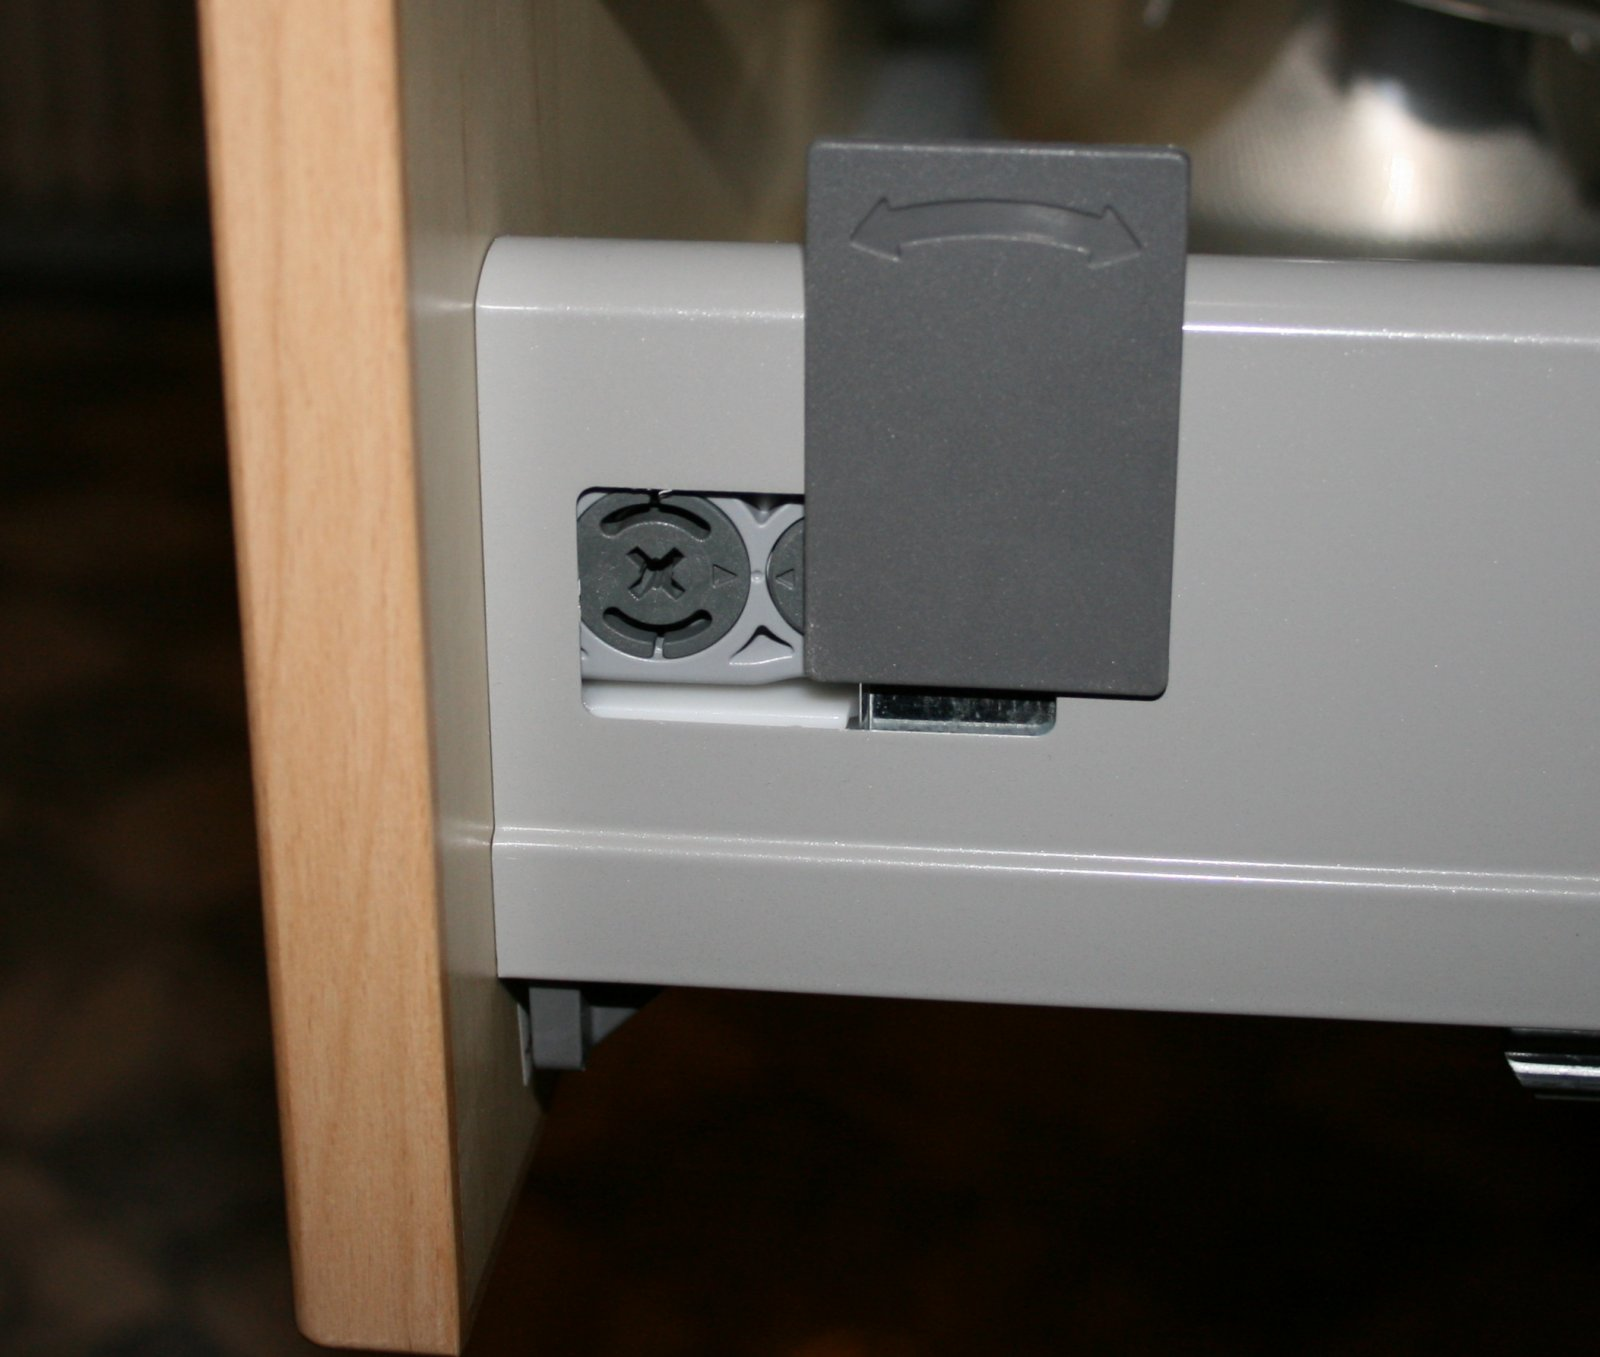 IKEA Rationell Faktum Kitchen Cabinets: How to disassemble ...